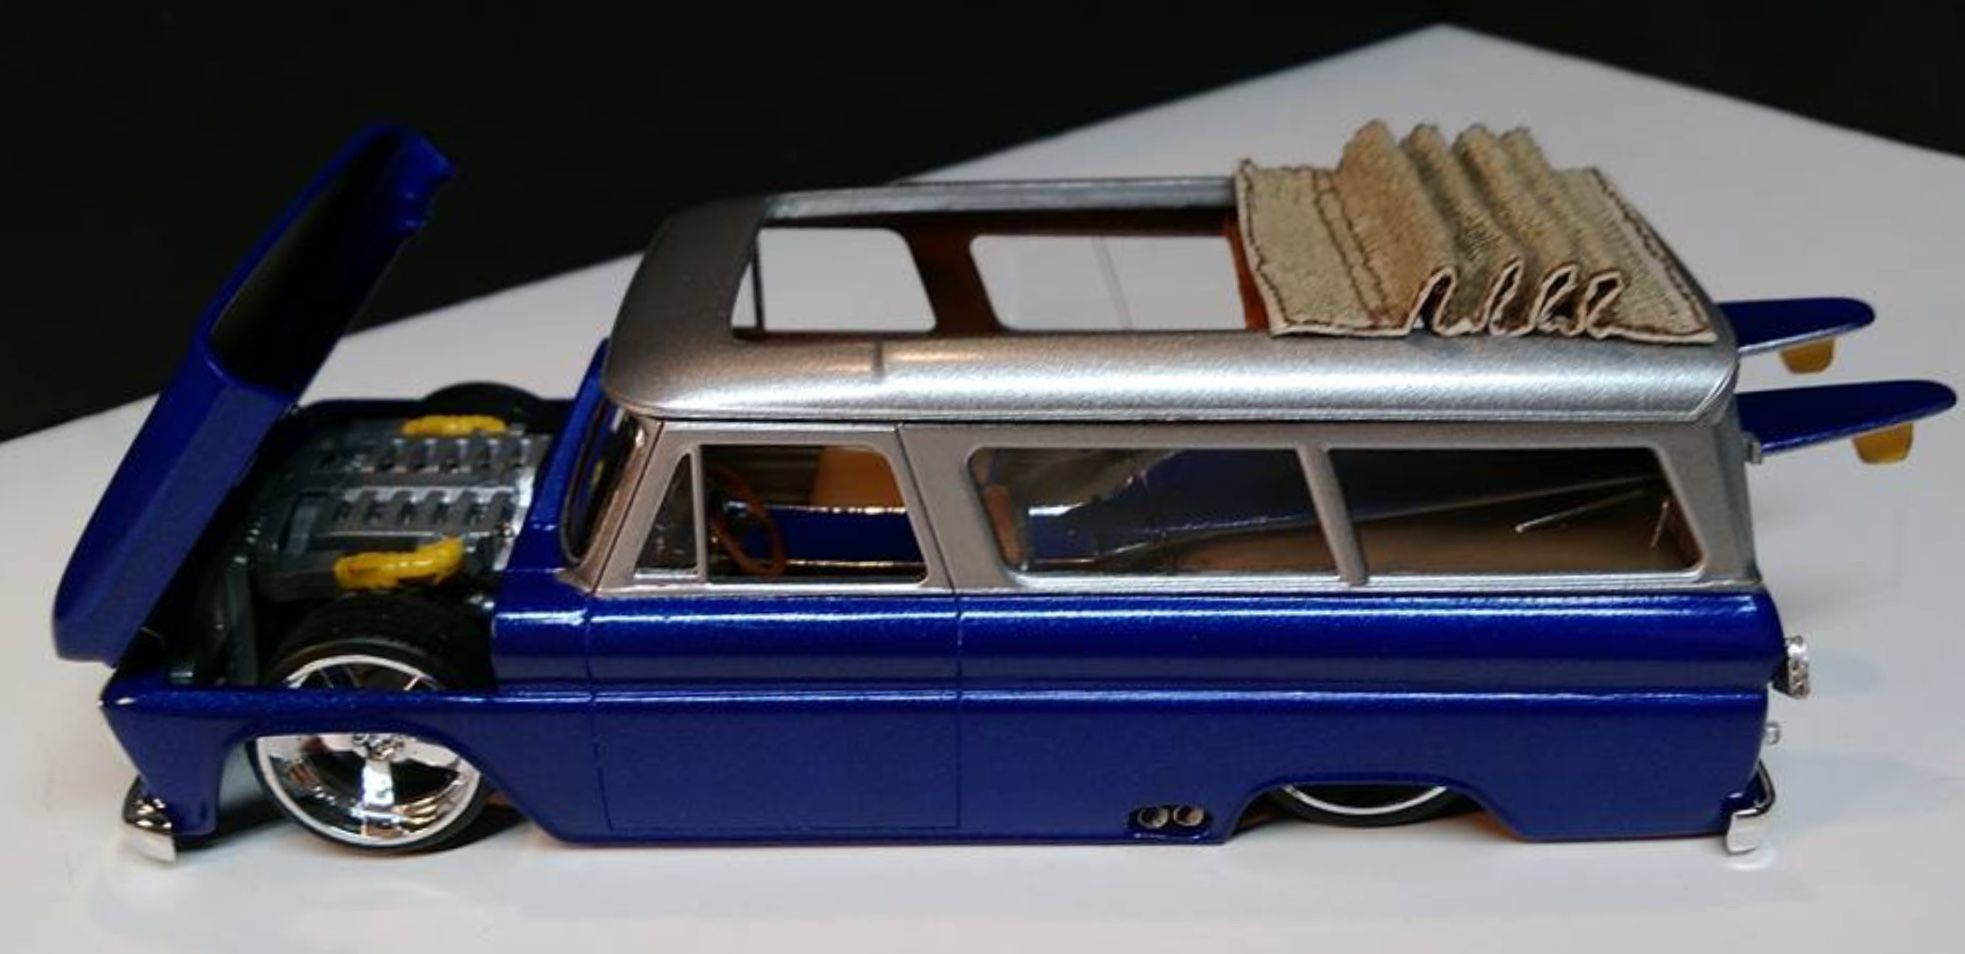 Lowrider car toys  Pin by Benjamin Carrasco on COLLECTABLES  Pinterest  Autos a